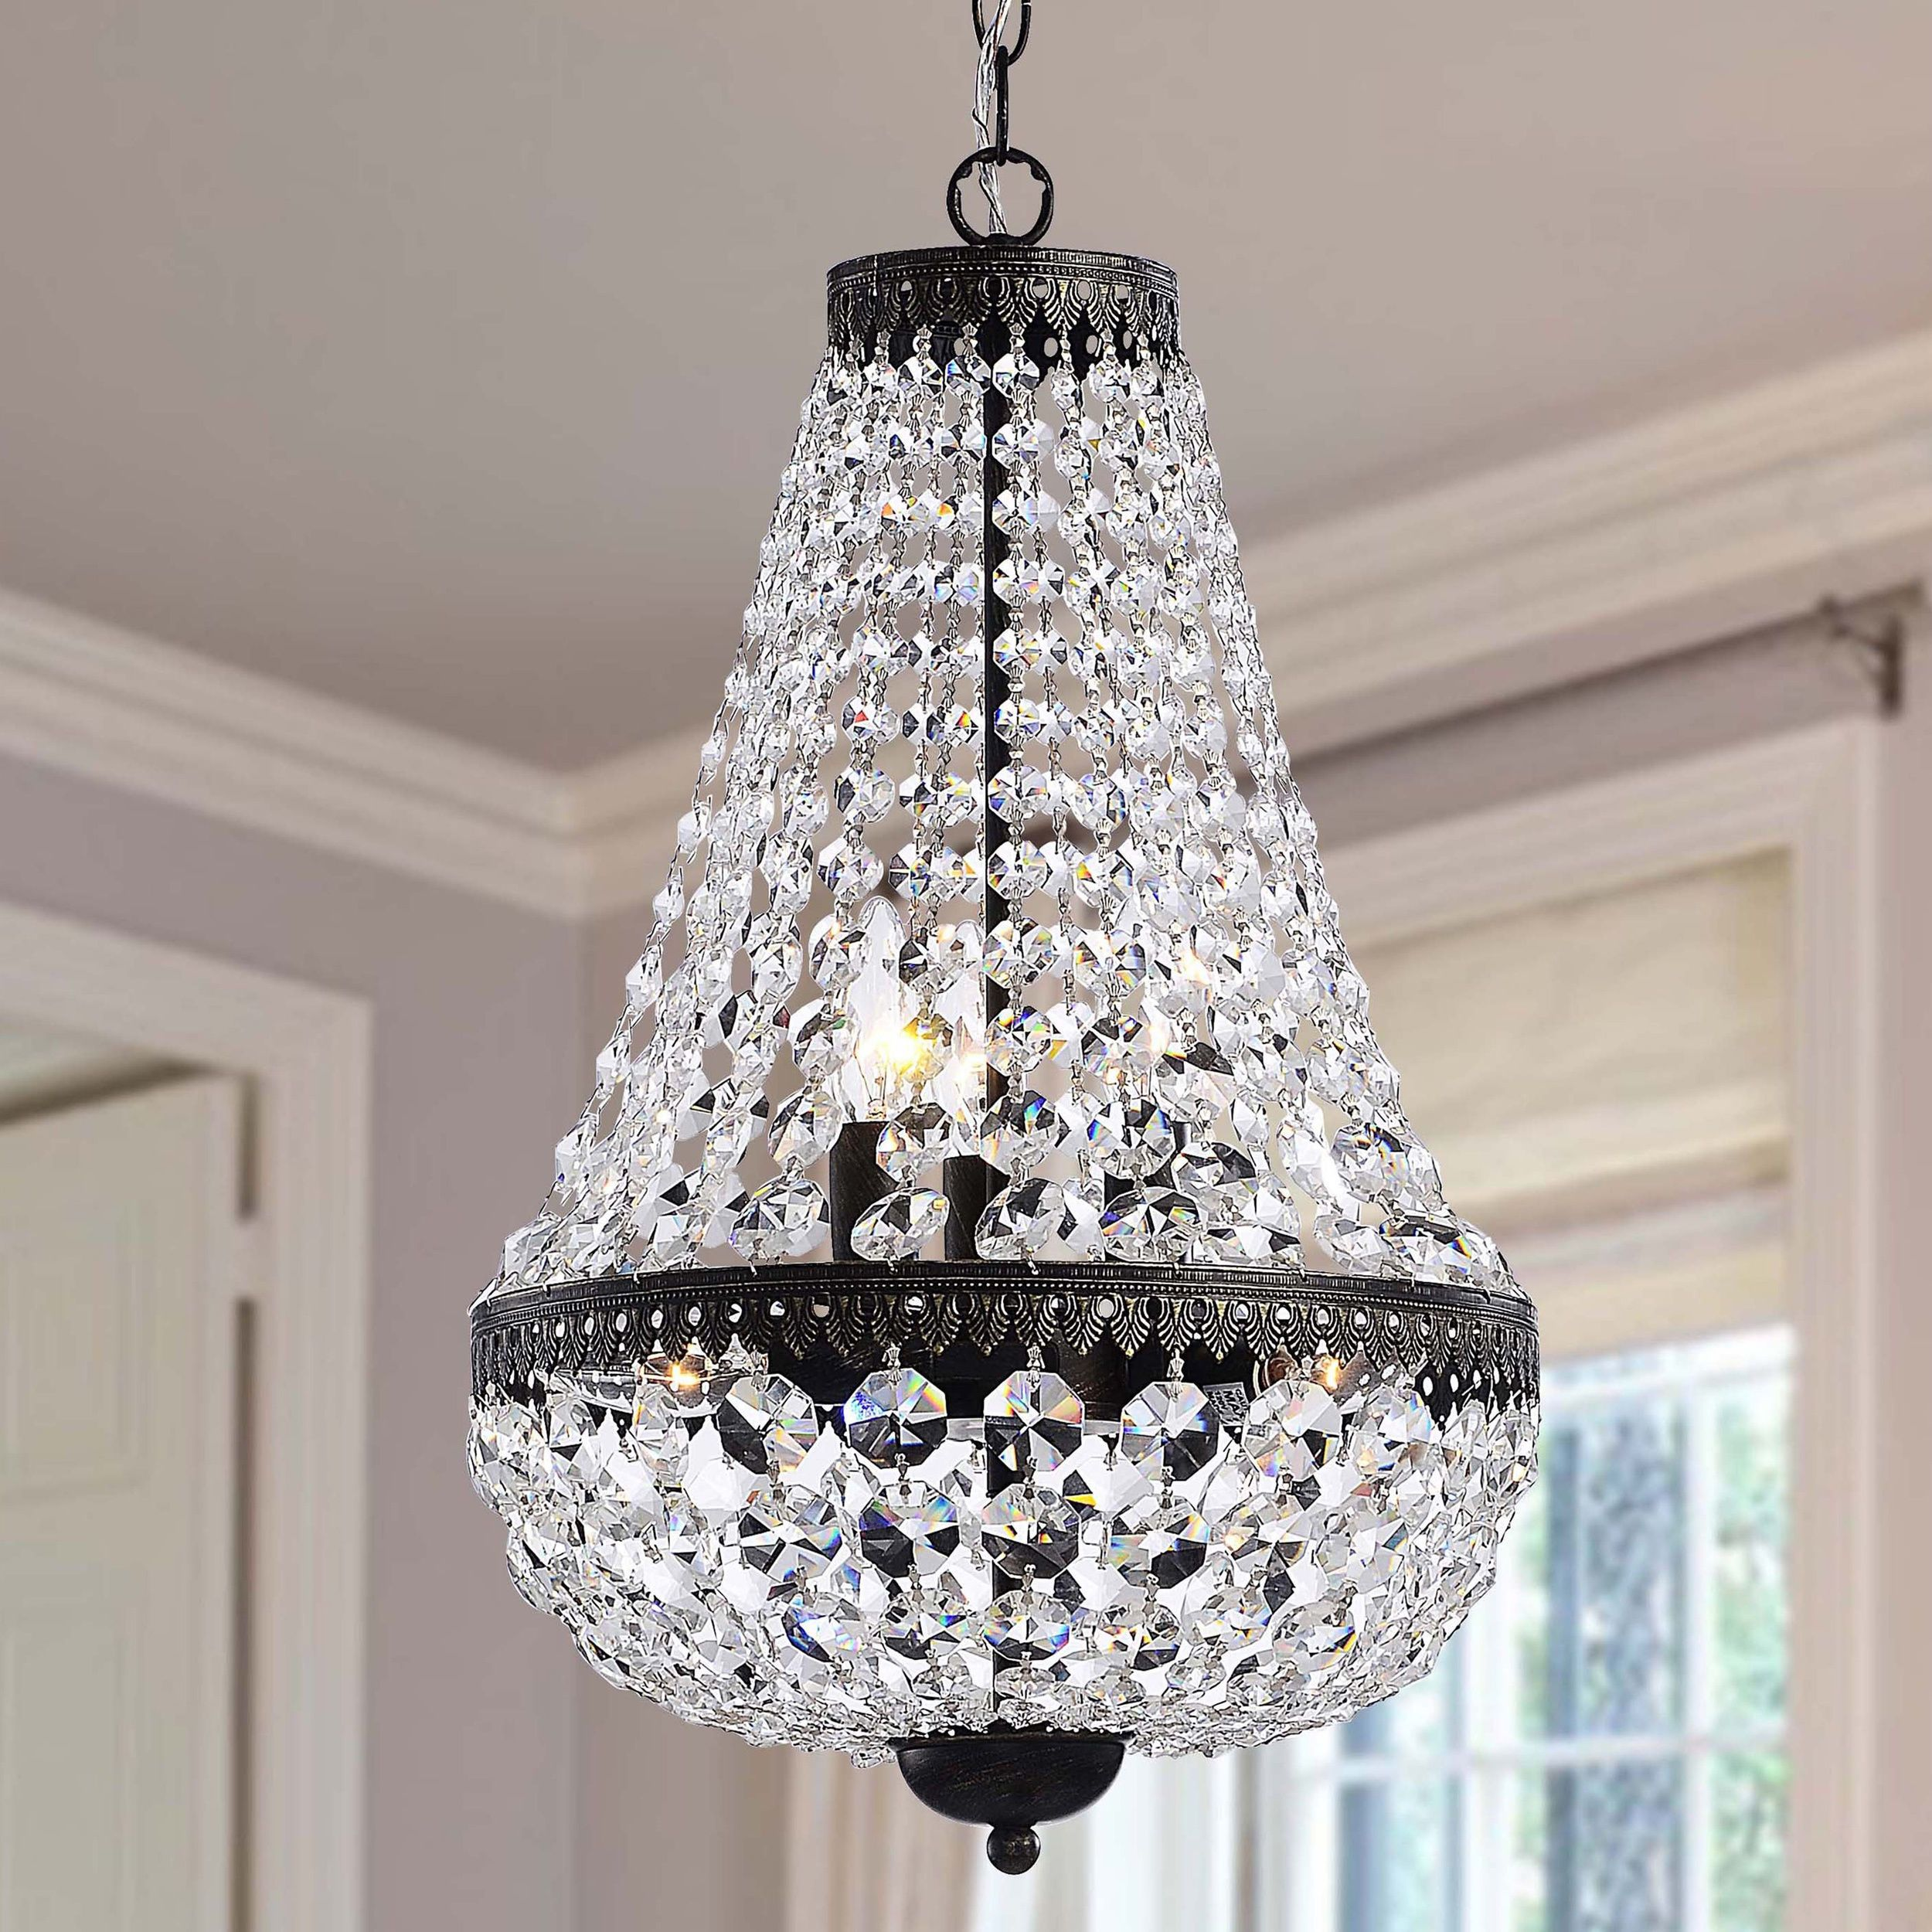 This Symmetric Antique Crystal Chandelier Features An